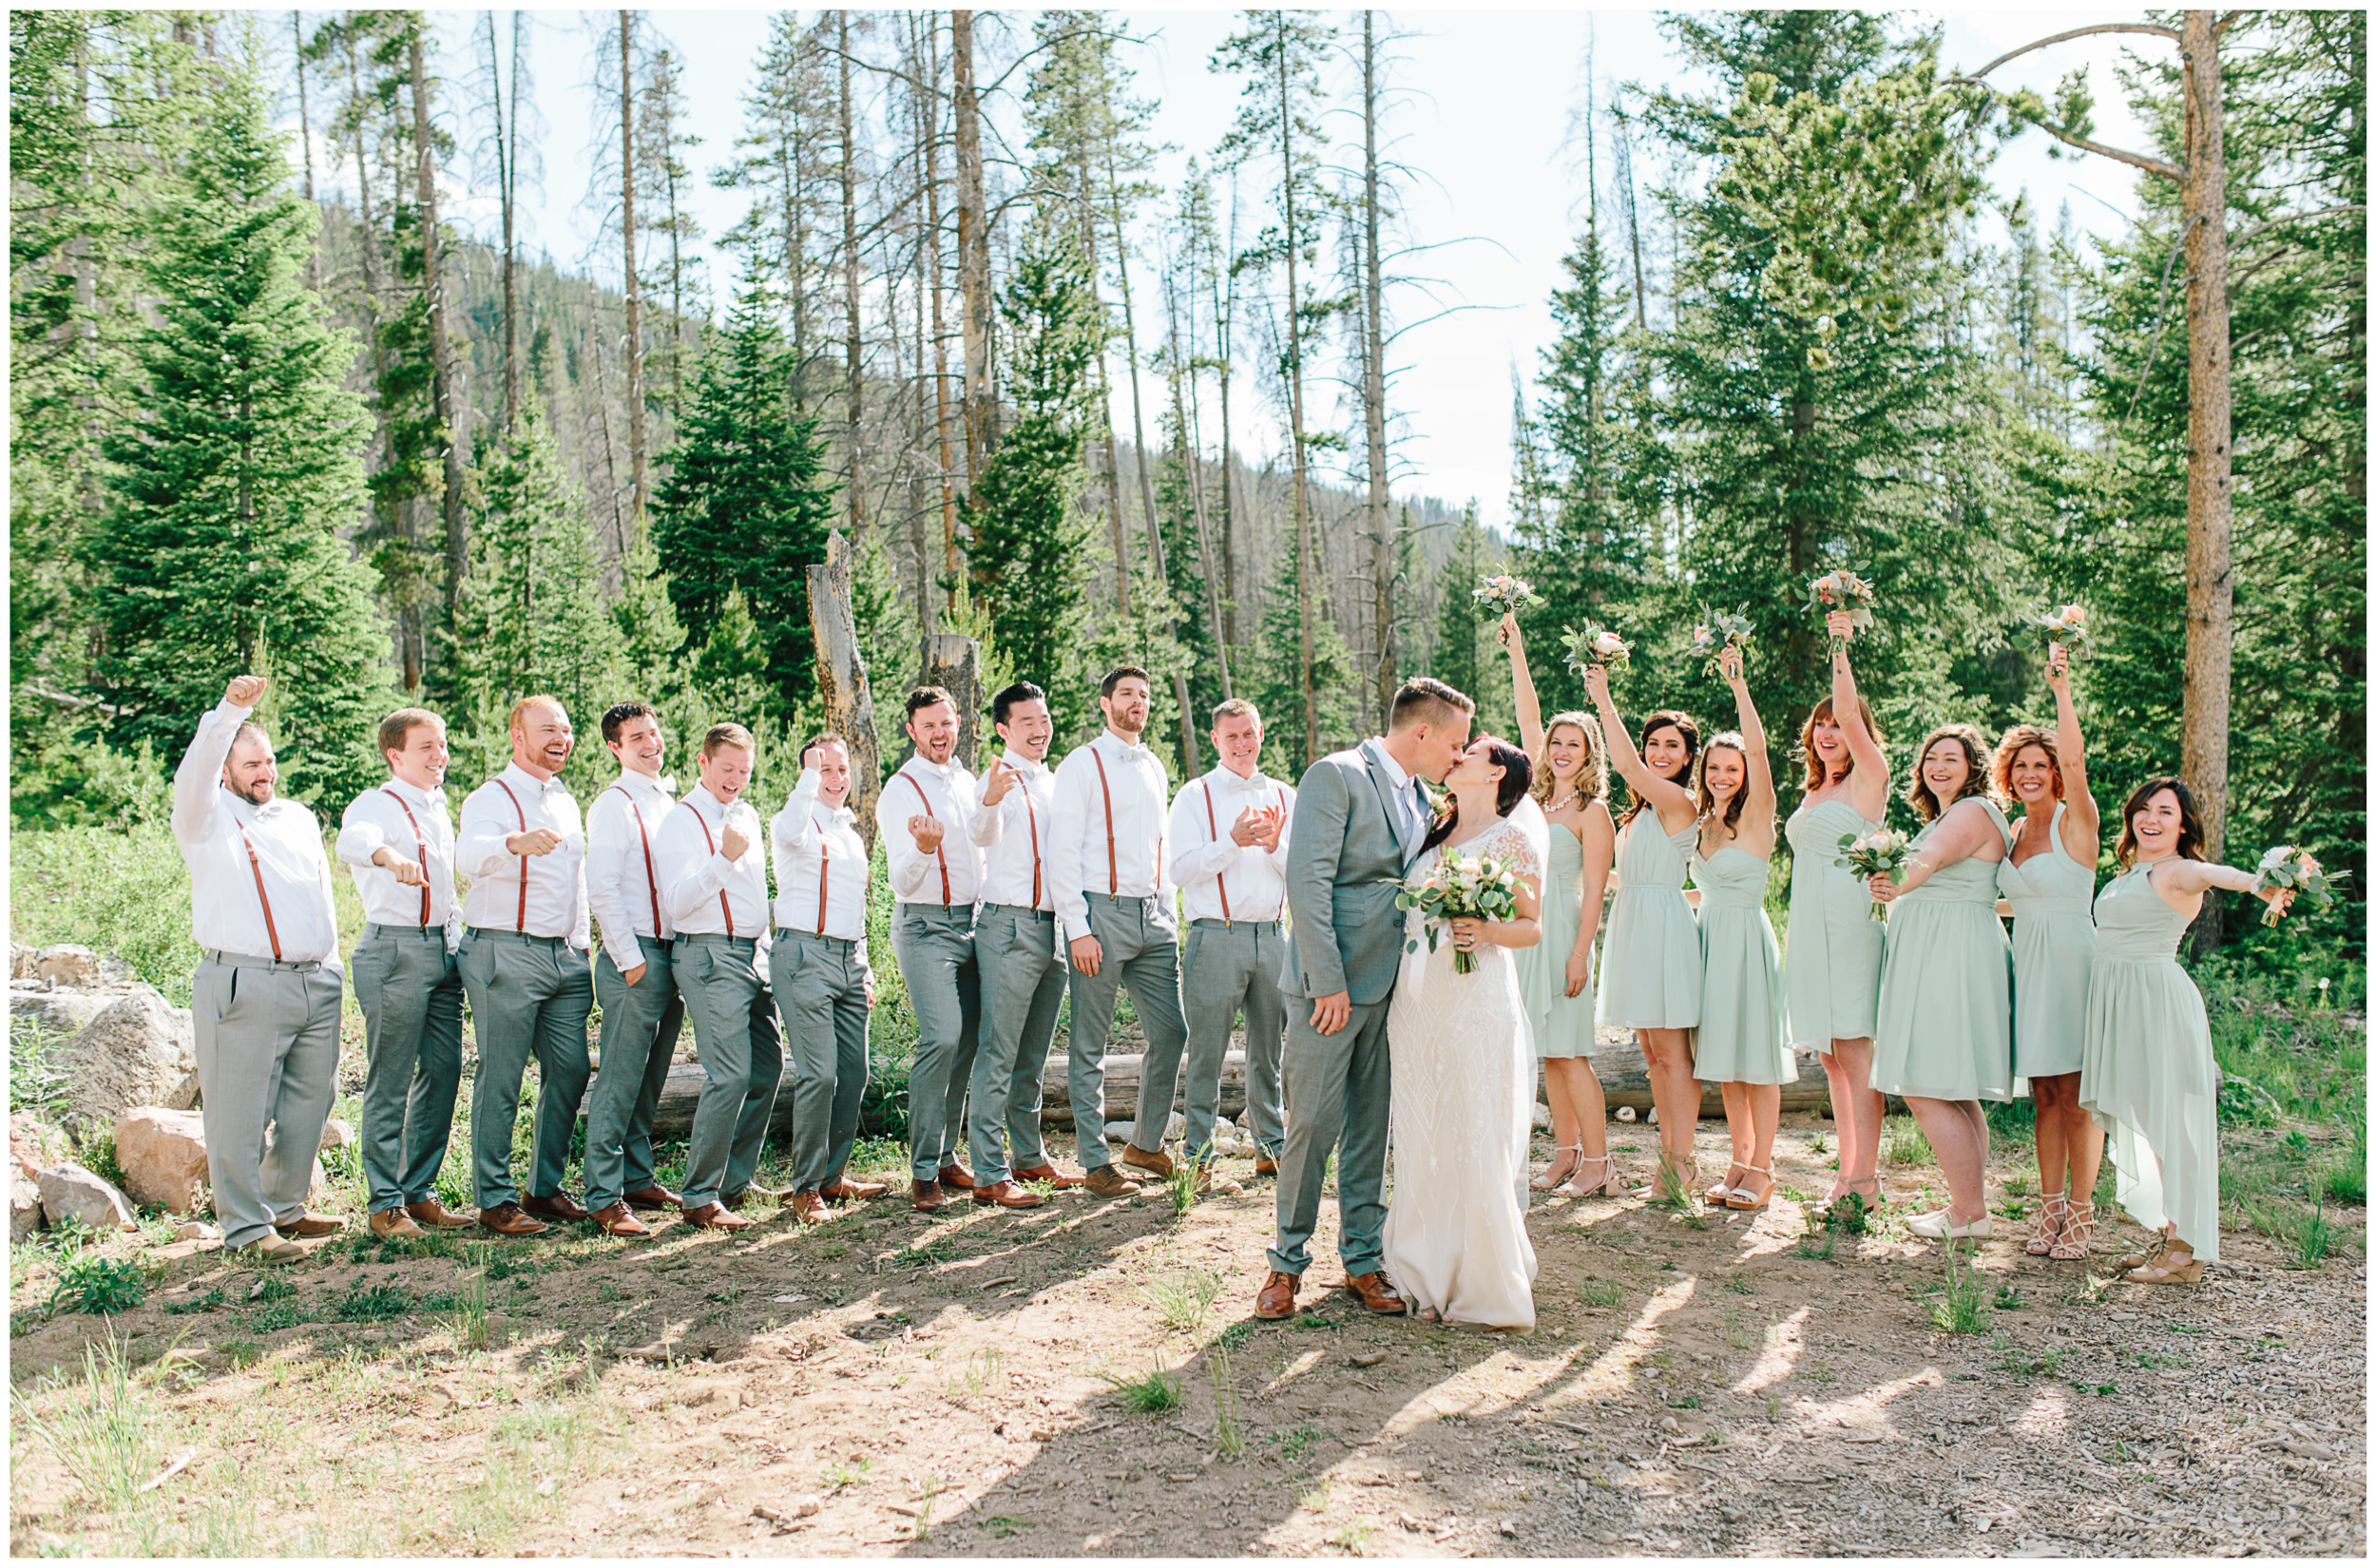 rocky_mountain_wedding_51a.jpg